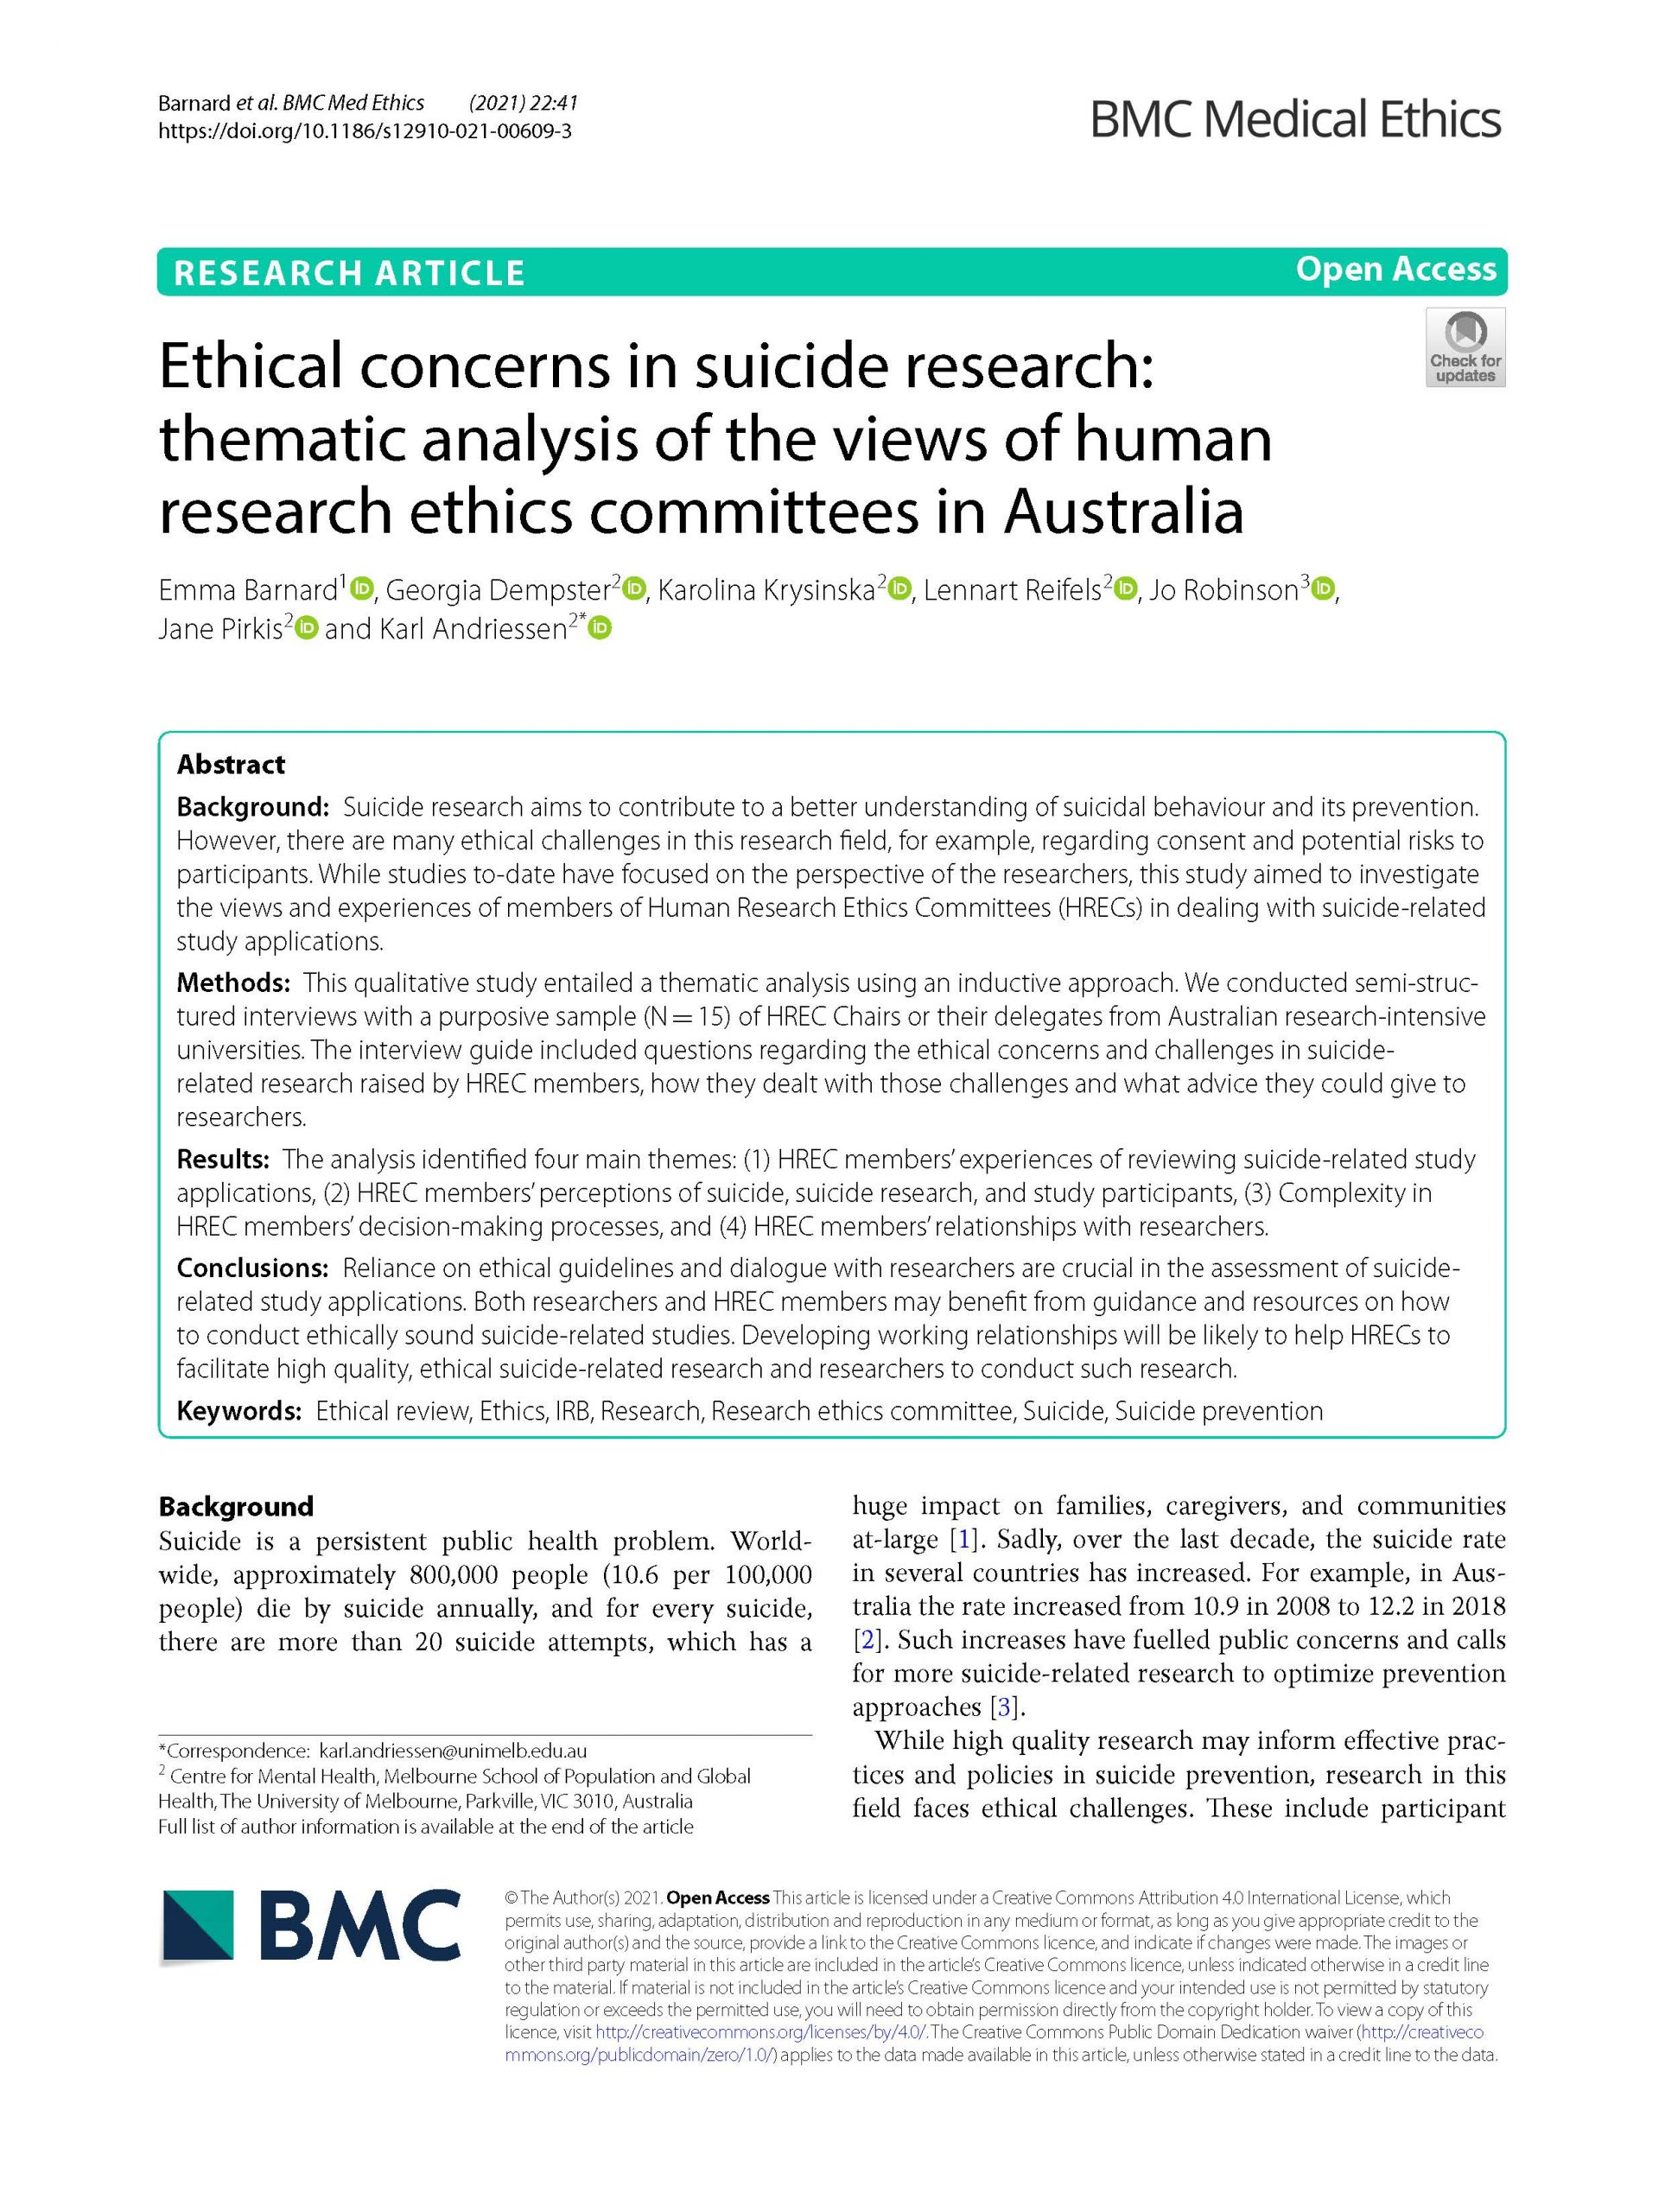 First page of paper about suicide research and HRECs